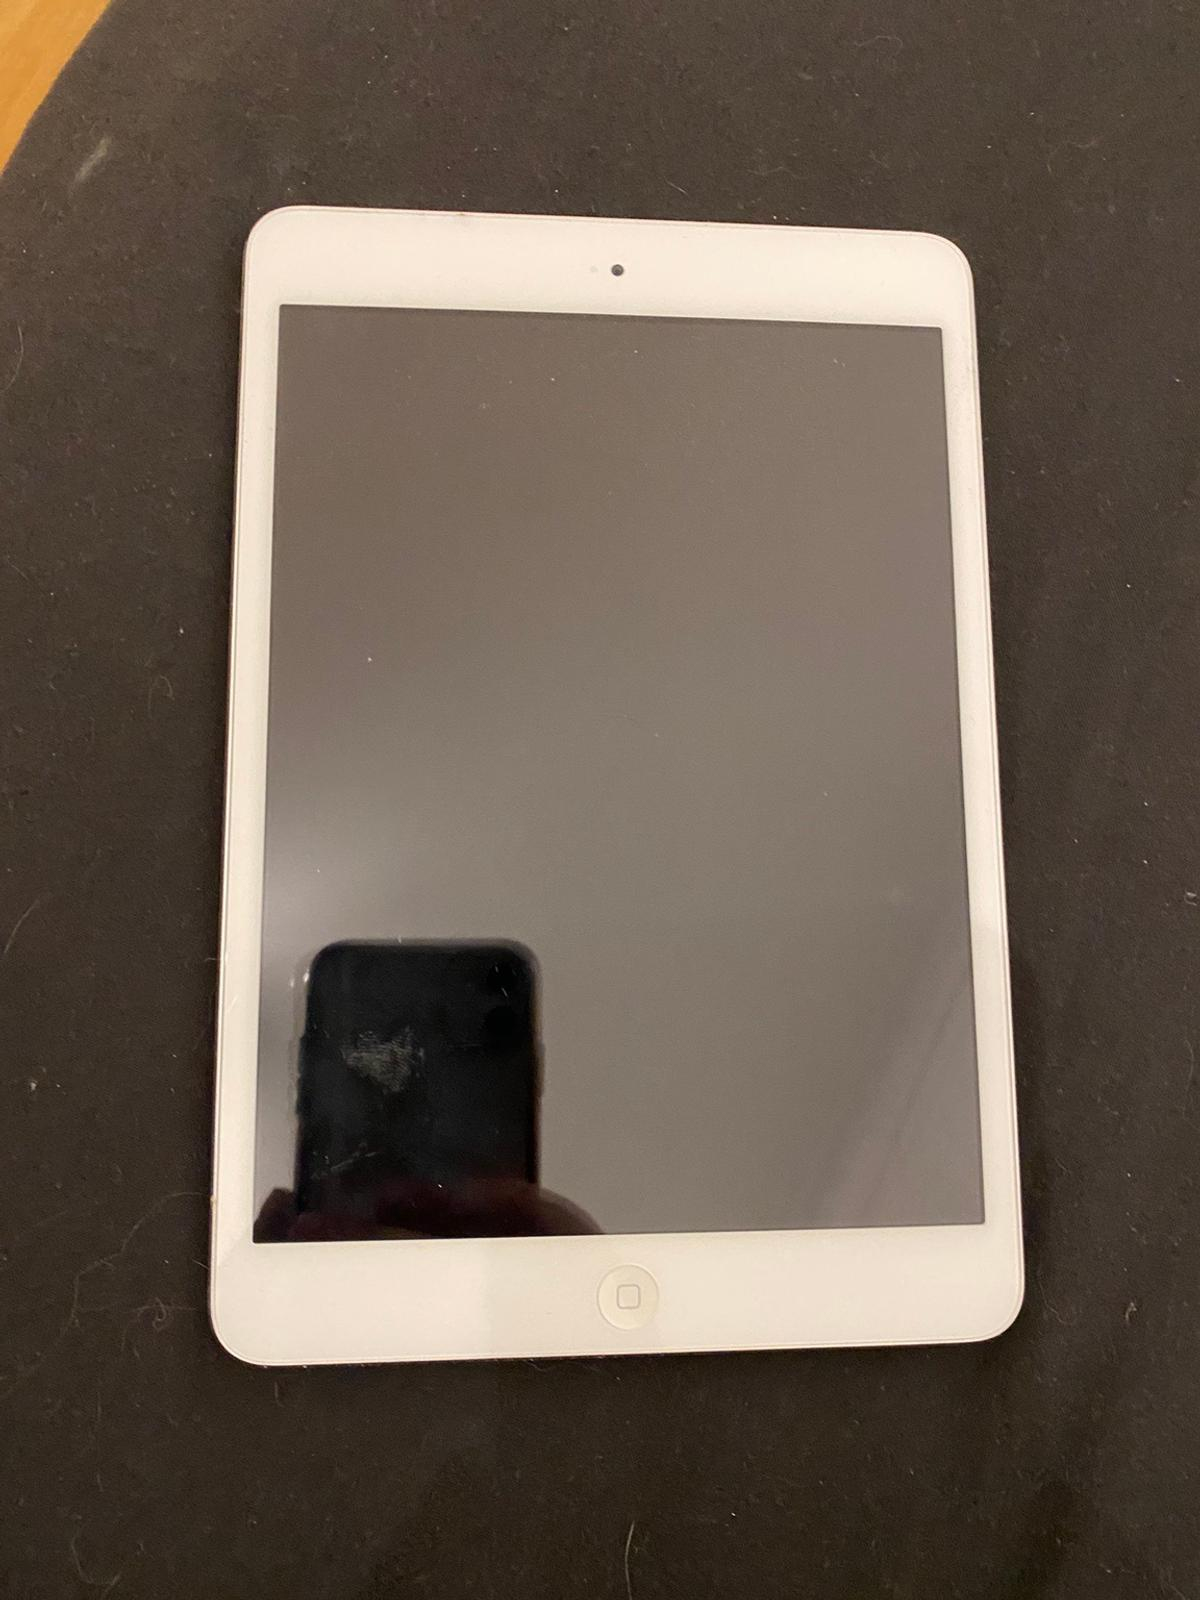 iPad Mini NOT WORKING hence price Silver Engraved